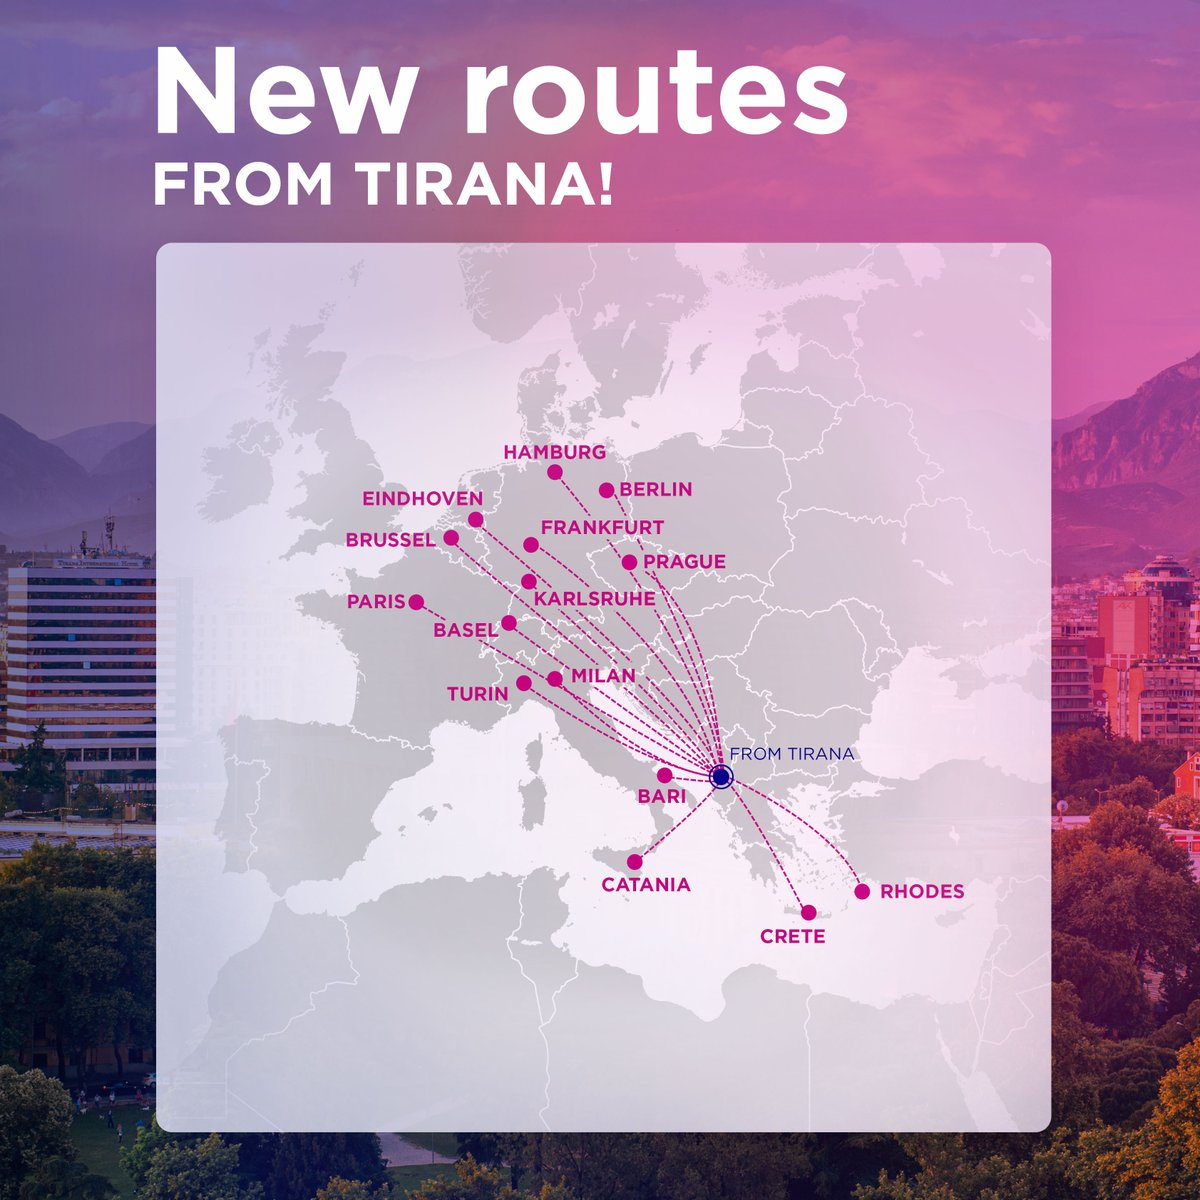 Wizz Air On Twitter New Routes From Tirana Are You Ready To Say Yes Again To Travelling Tirana We Re Finally Here For You From The 1st Of July We Re Taking You